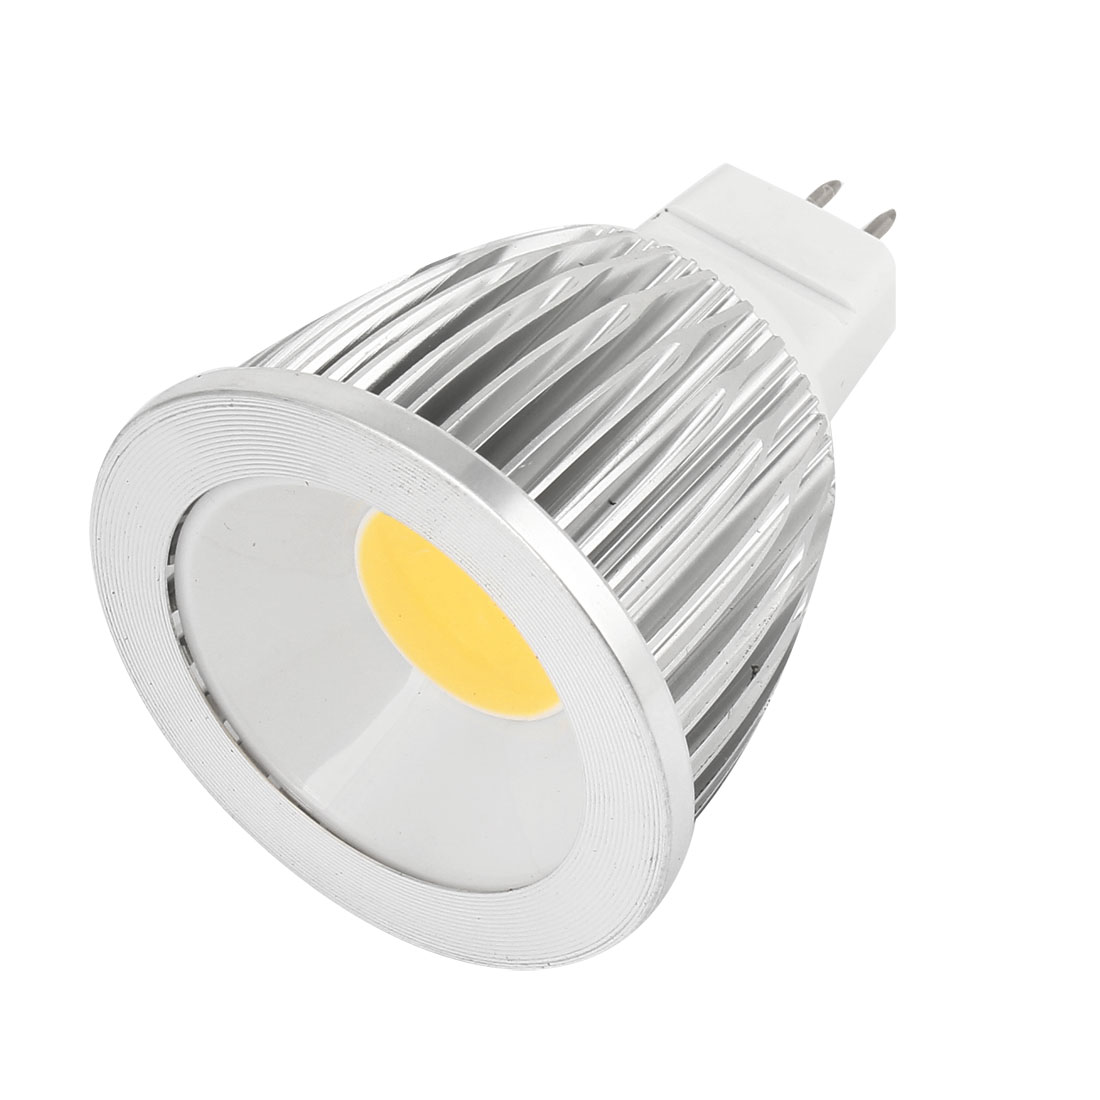 AC 12V 9W MR16 Non-dimmable Warm White Light COB LED Downlight Spotlight